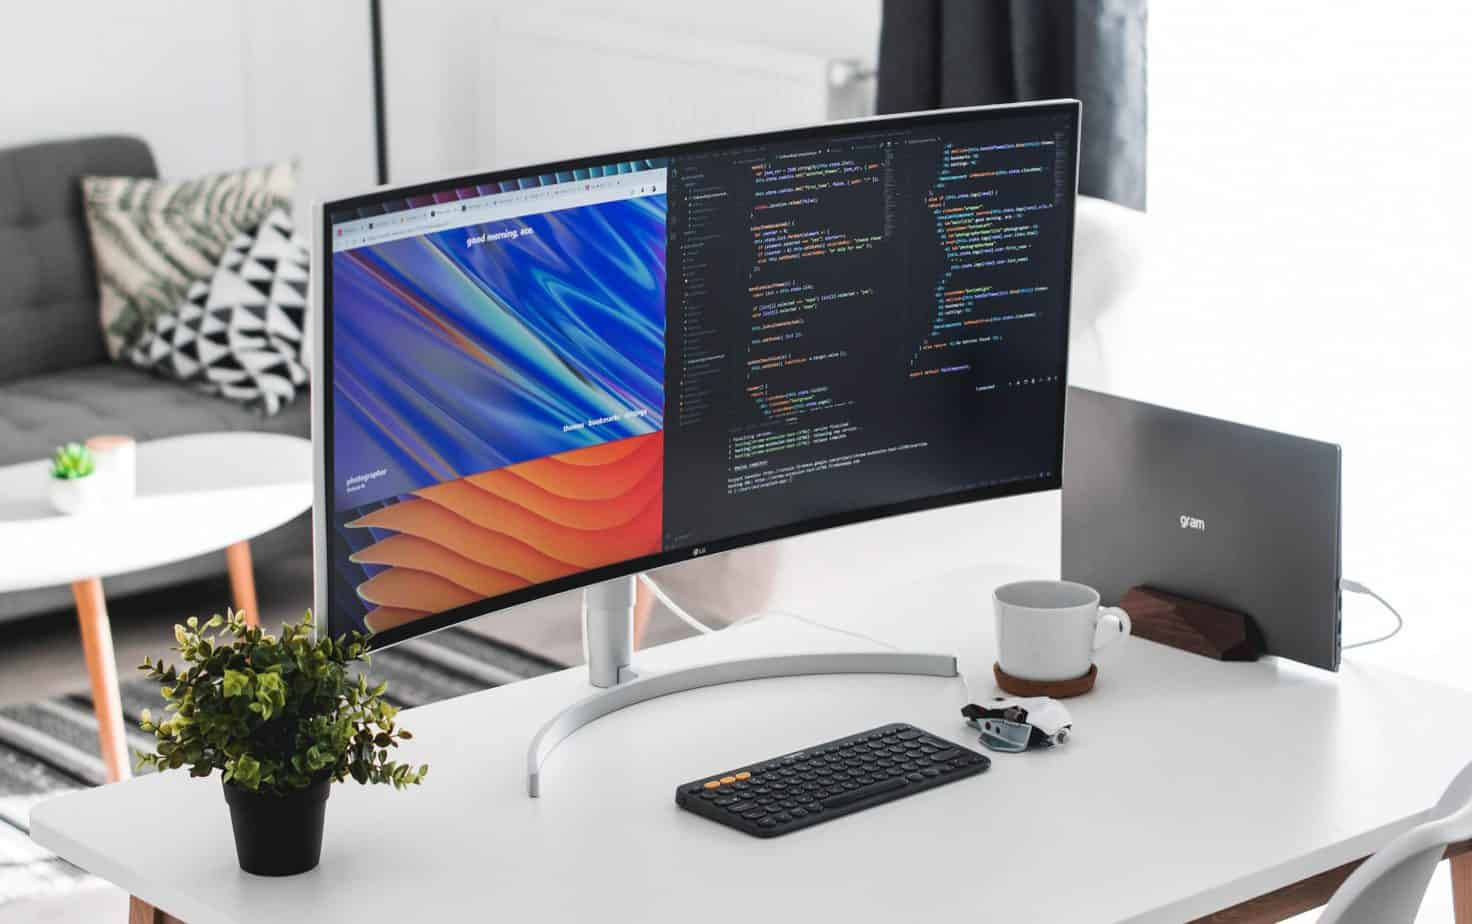 Qué es html5|web open source html frontend|Web open source html backend|Proceso solicitud pc servidor html|Elemento HTML5